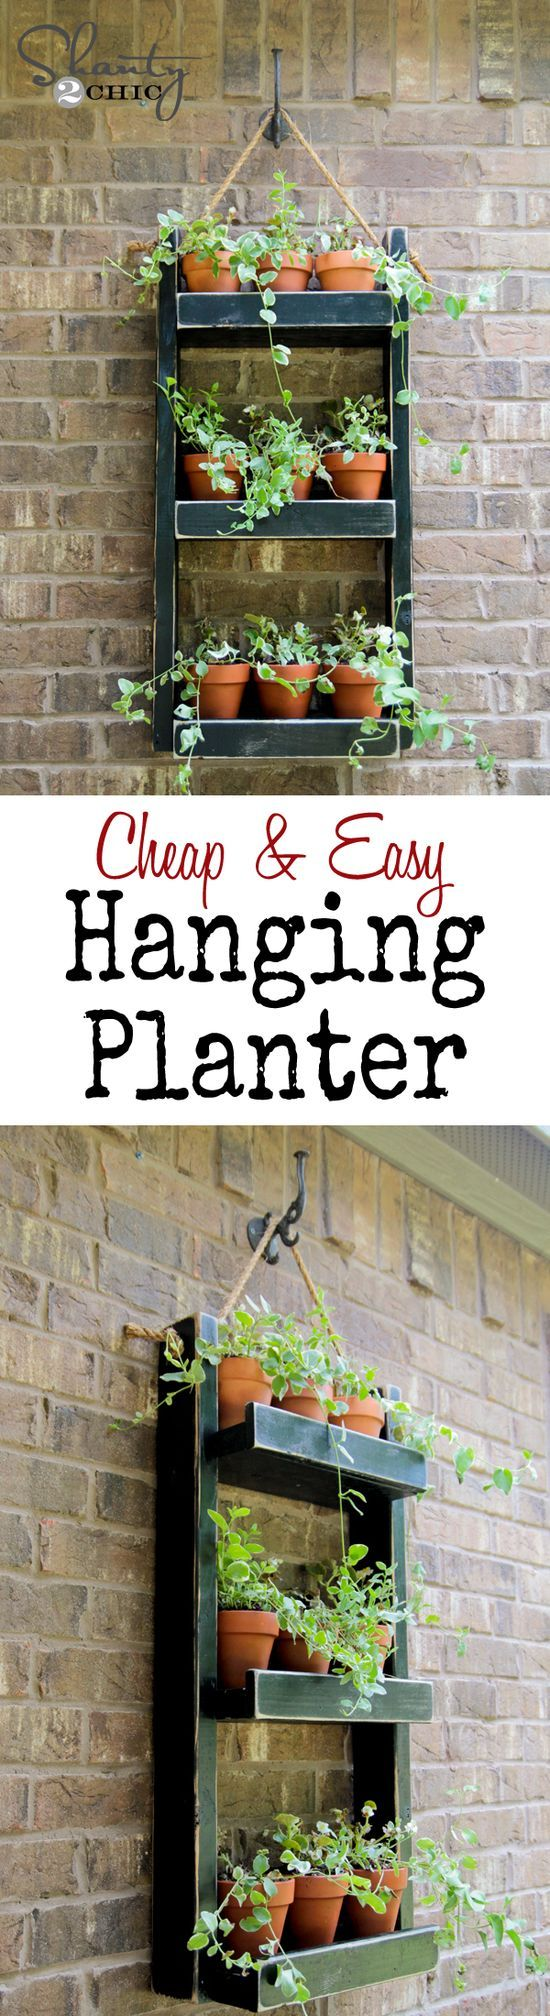 DIY- Super cheap and easy hanging planter for your home. This is also a great gift idea for your gardner friend or a house-warming